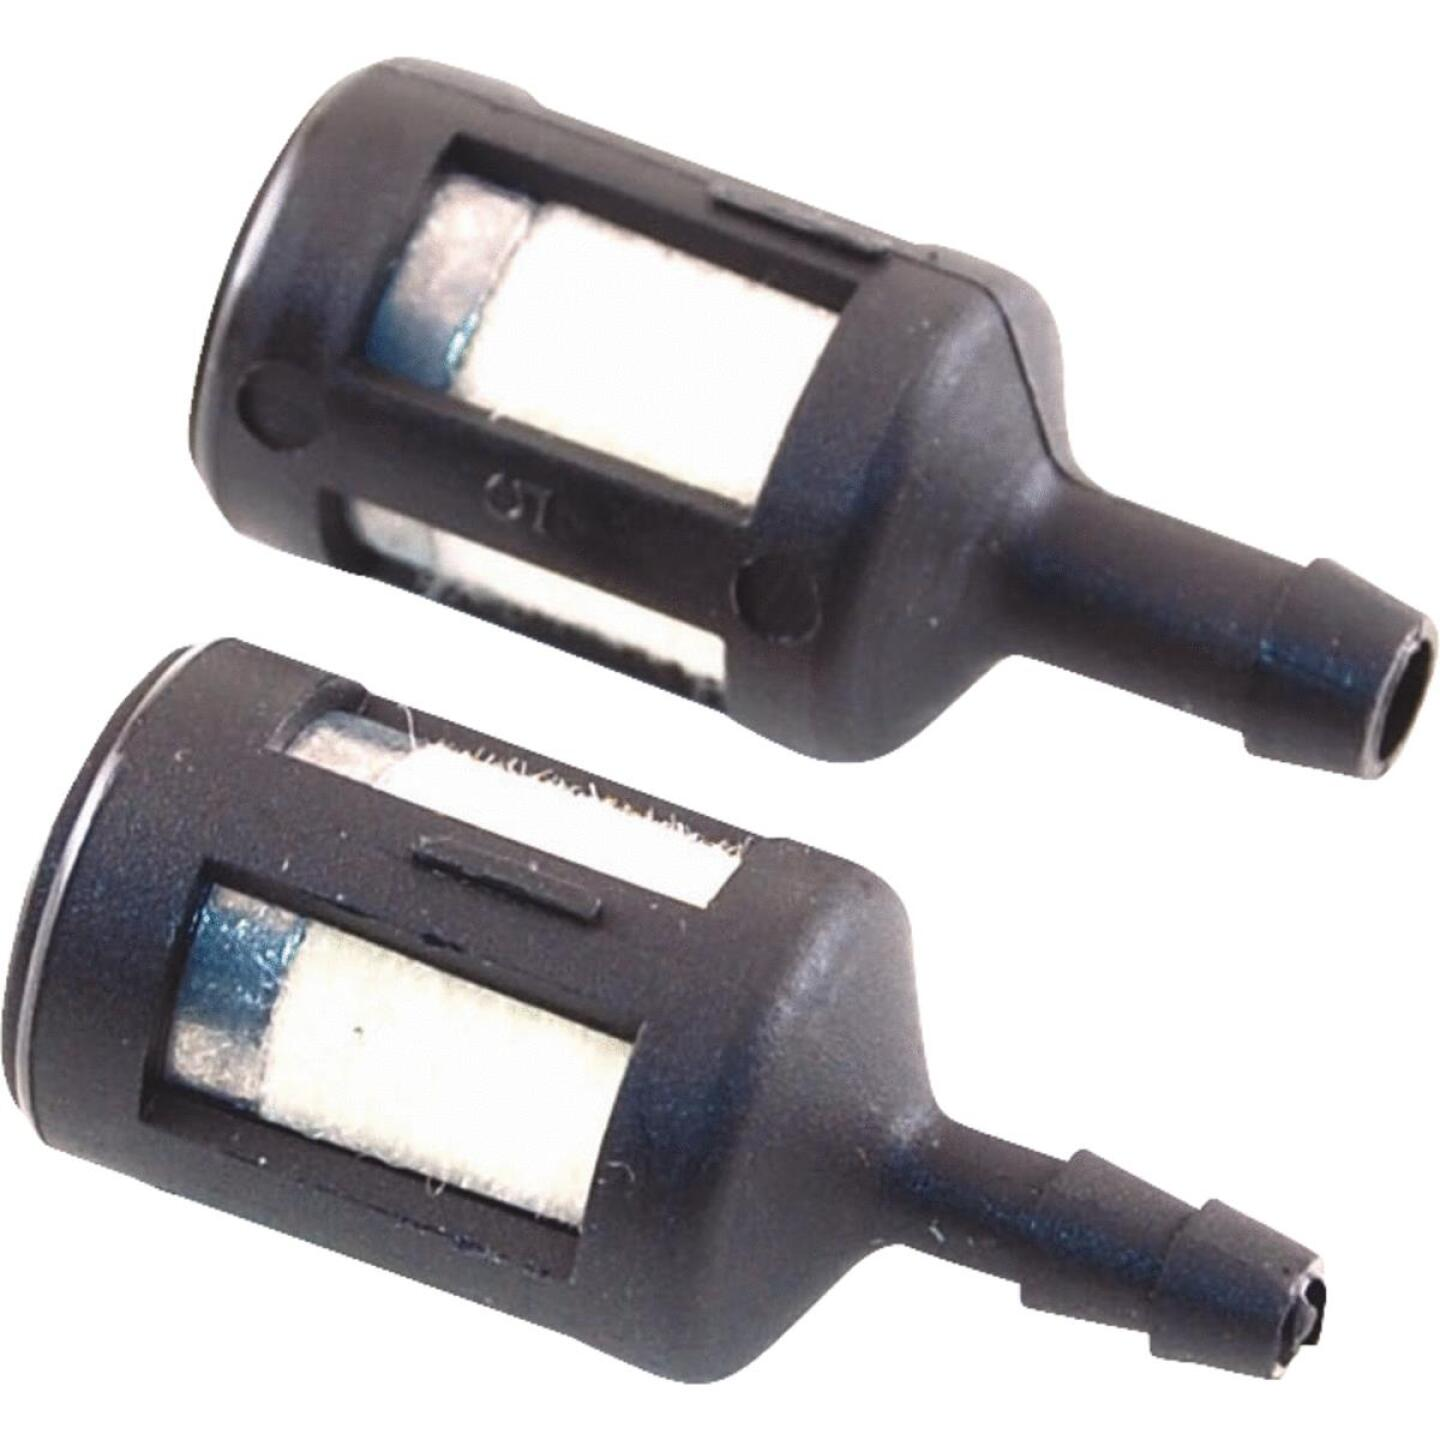 Arnold 2-Cycle Fuel Filter (2 Pack) Image 1